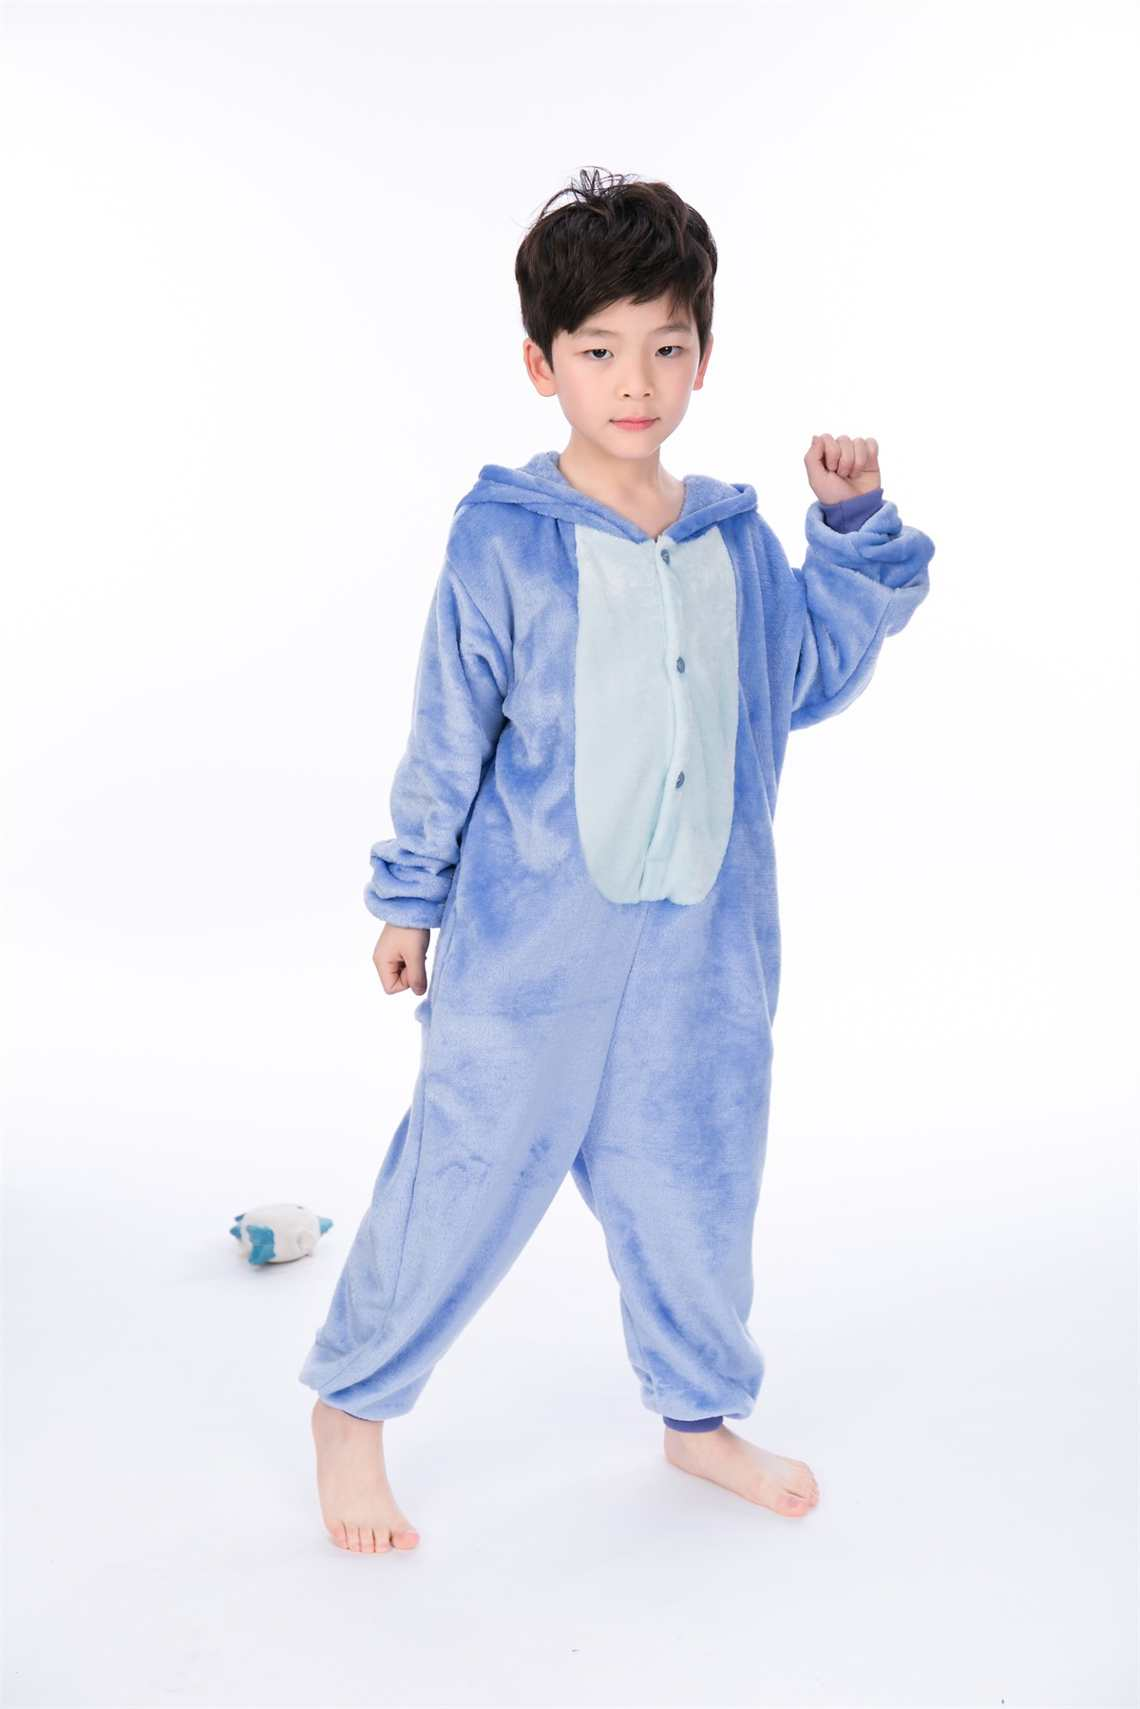 Halloween Onesies for Men - What You Need to Know